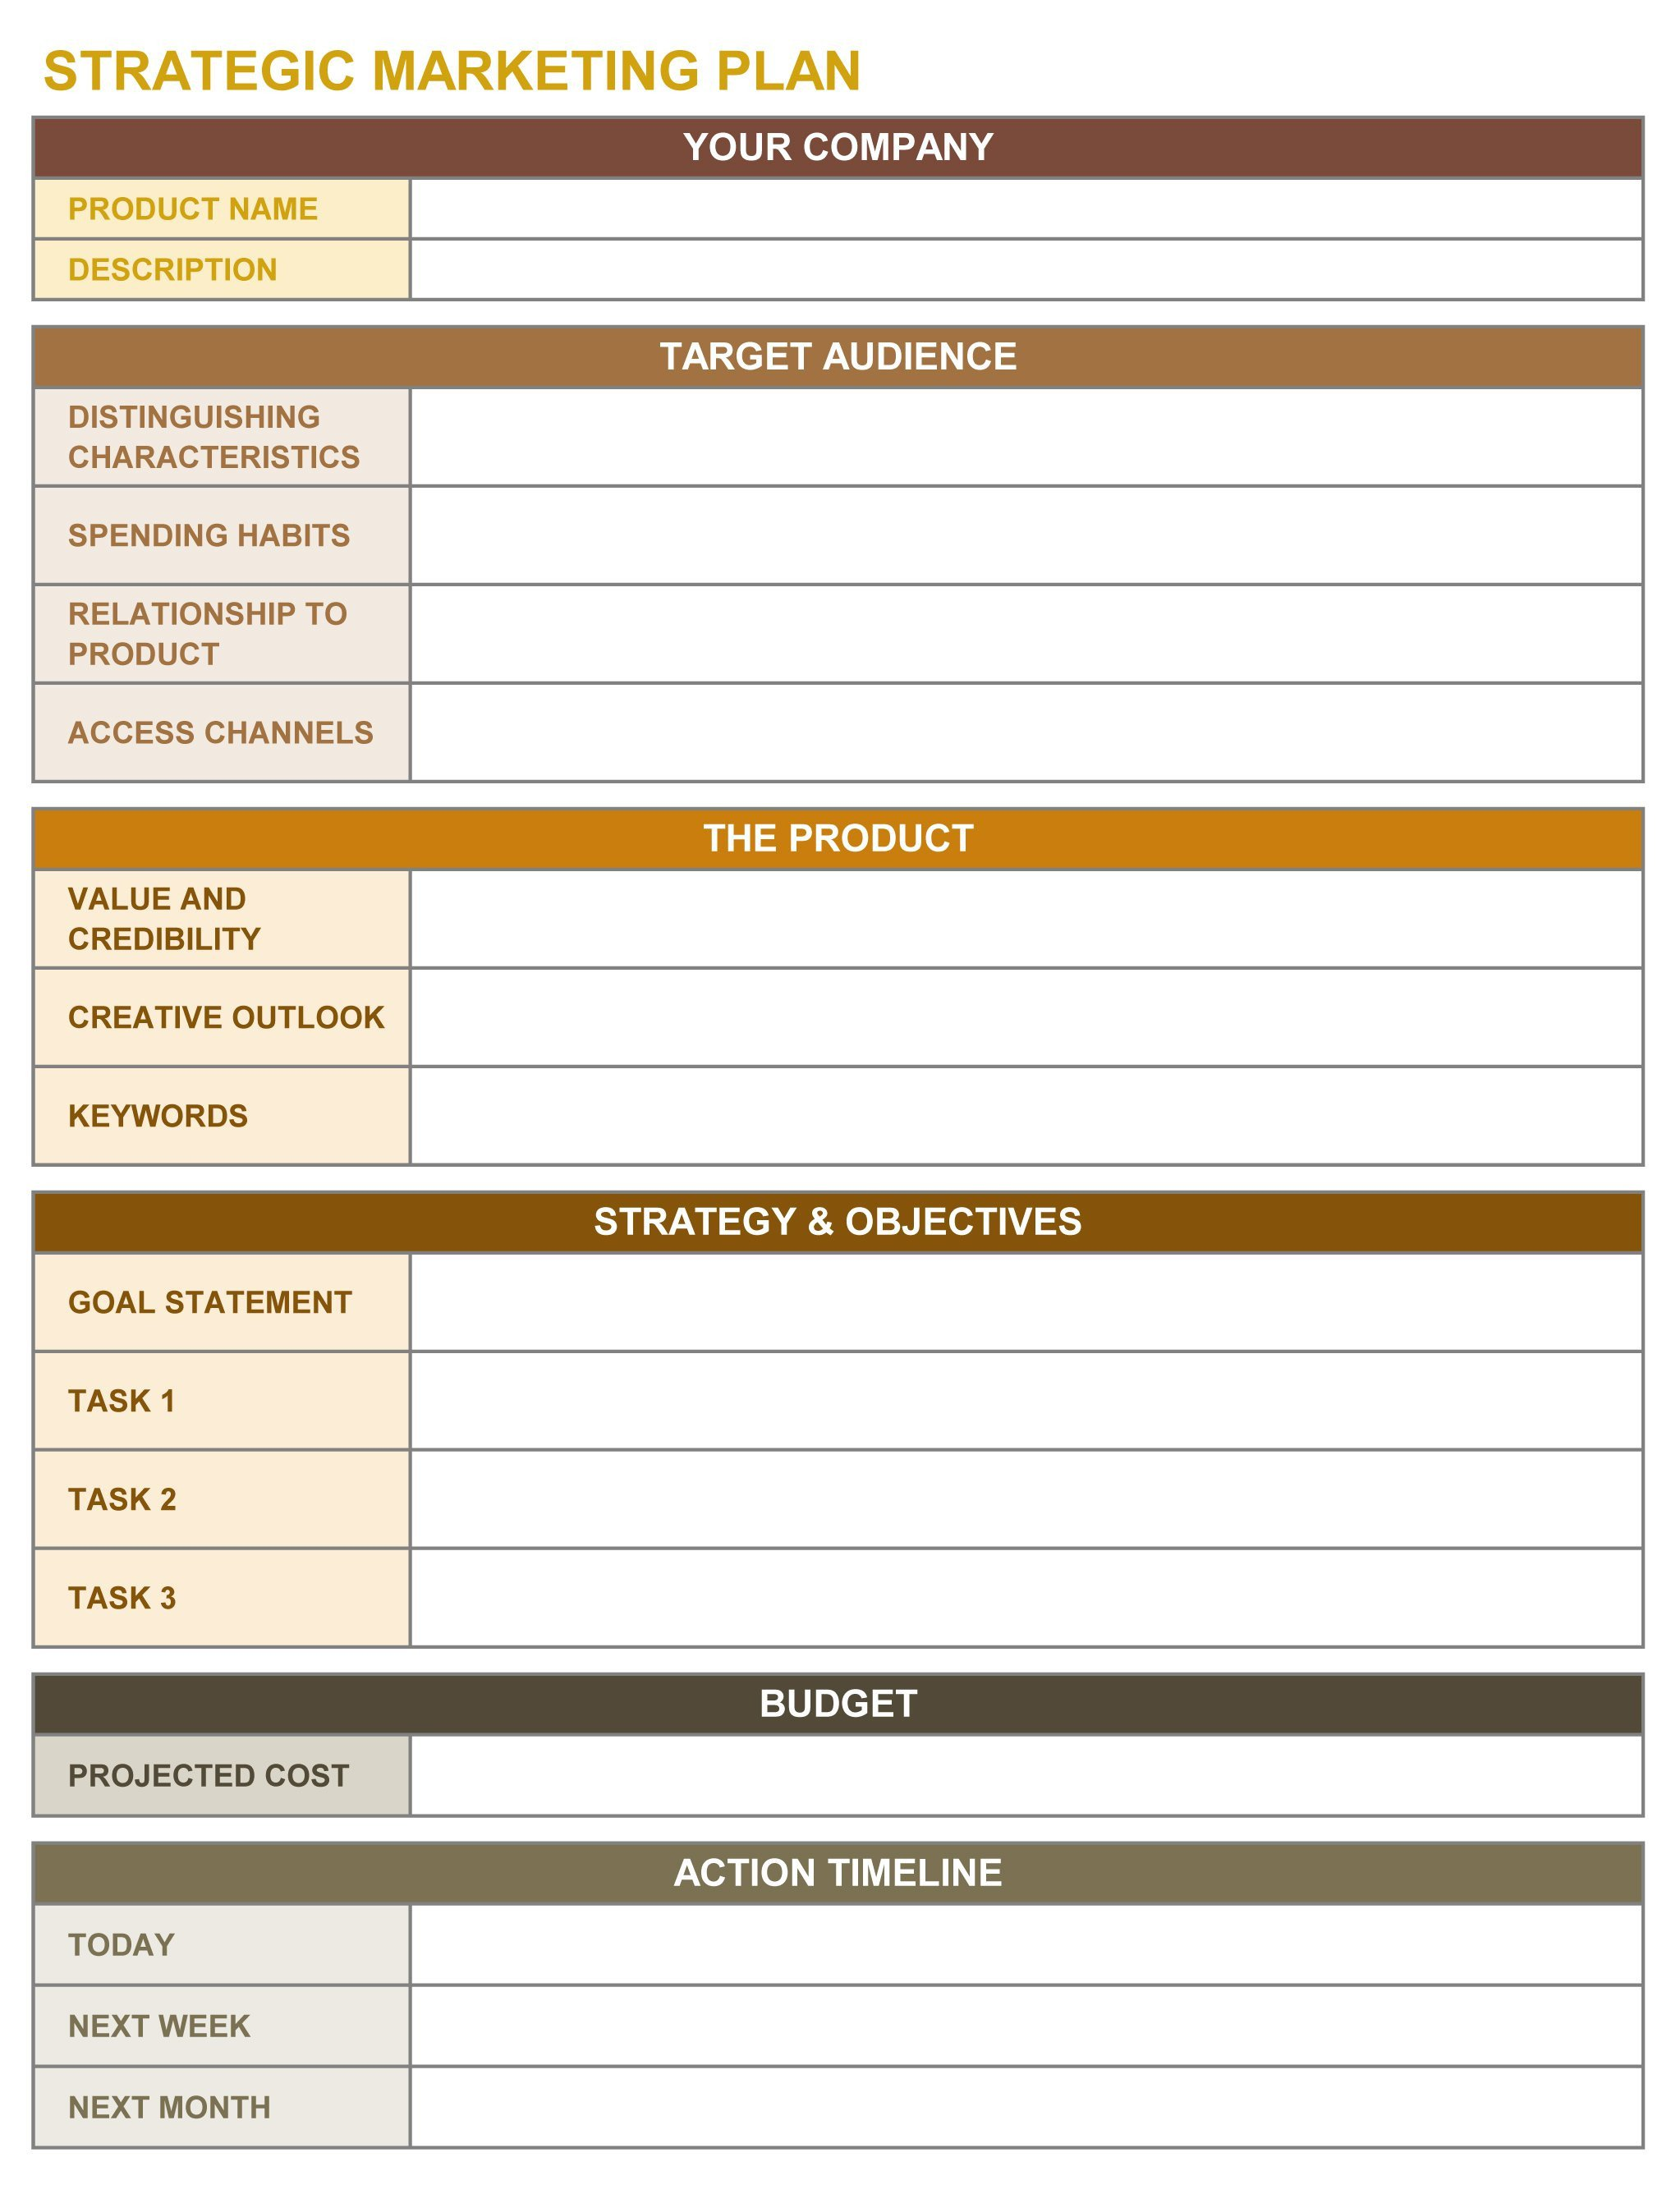 Strategic Plan Templates Free 9 Free Strategic Planning Templates Smartsheet